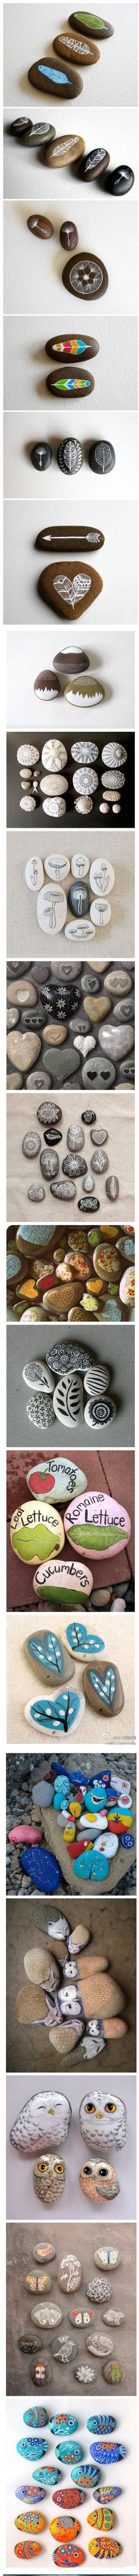 painted pebbles - make into magnets? Nat  Jake